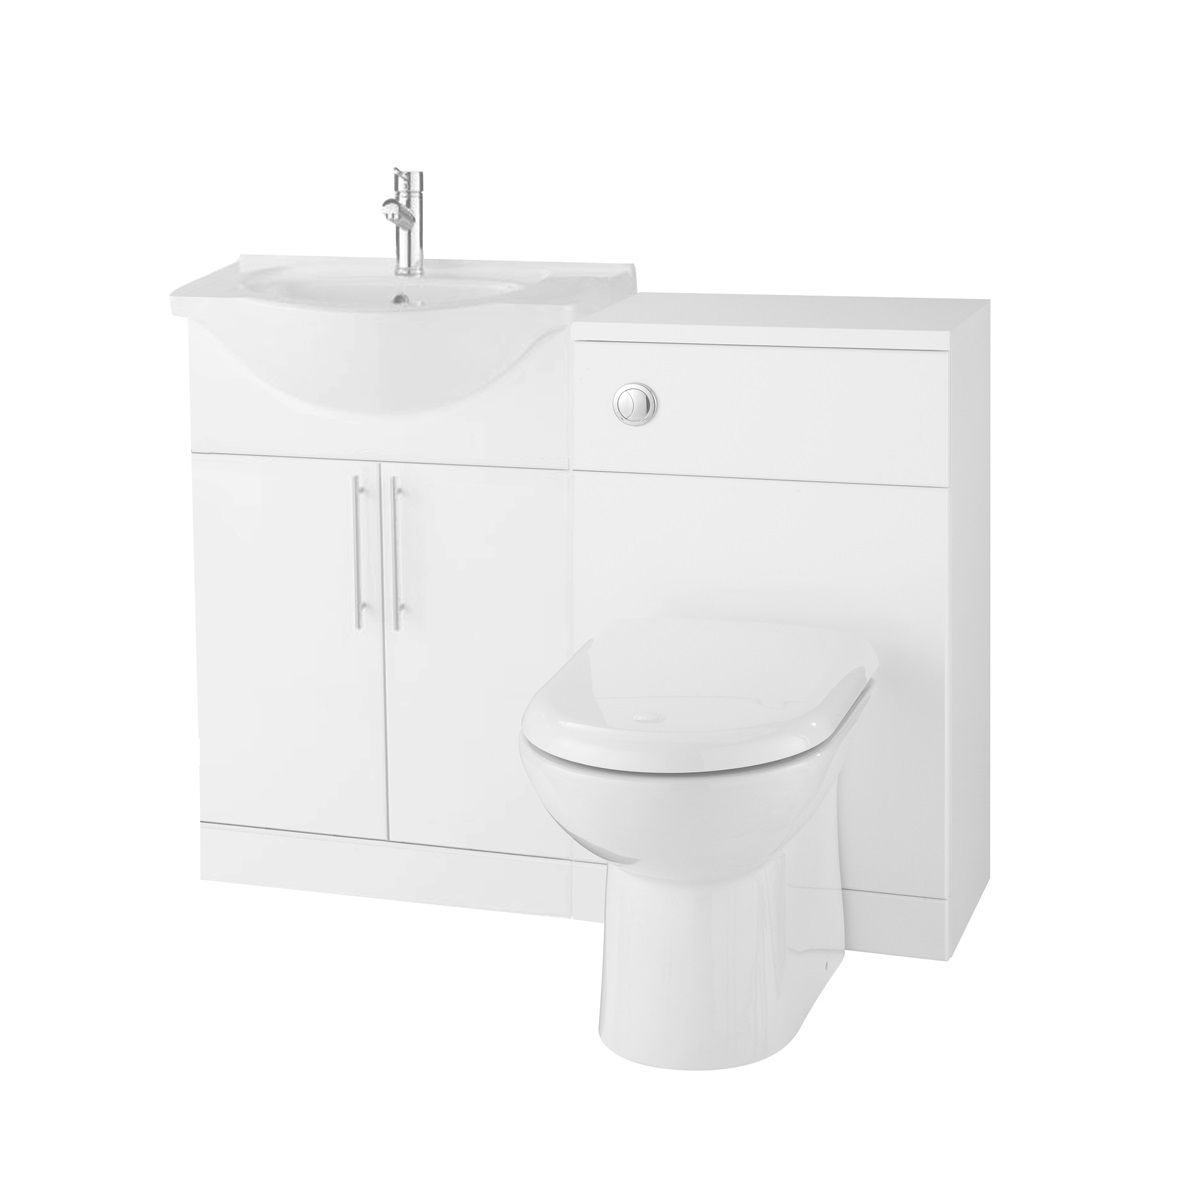 Glacier Vanity Unit Basin 450mm With Back To Wall Toilet Unit 600mm White